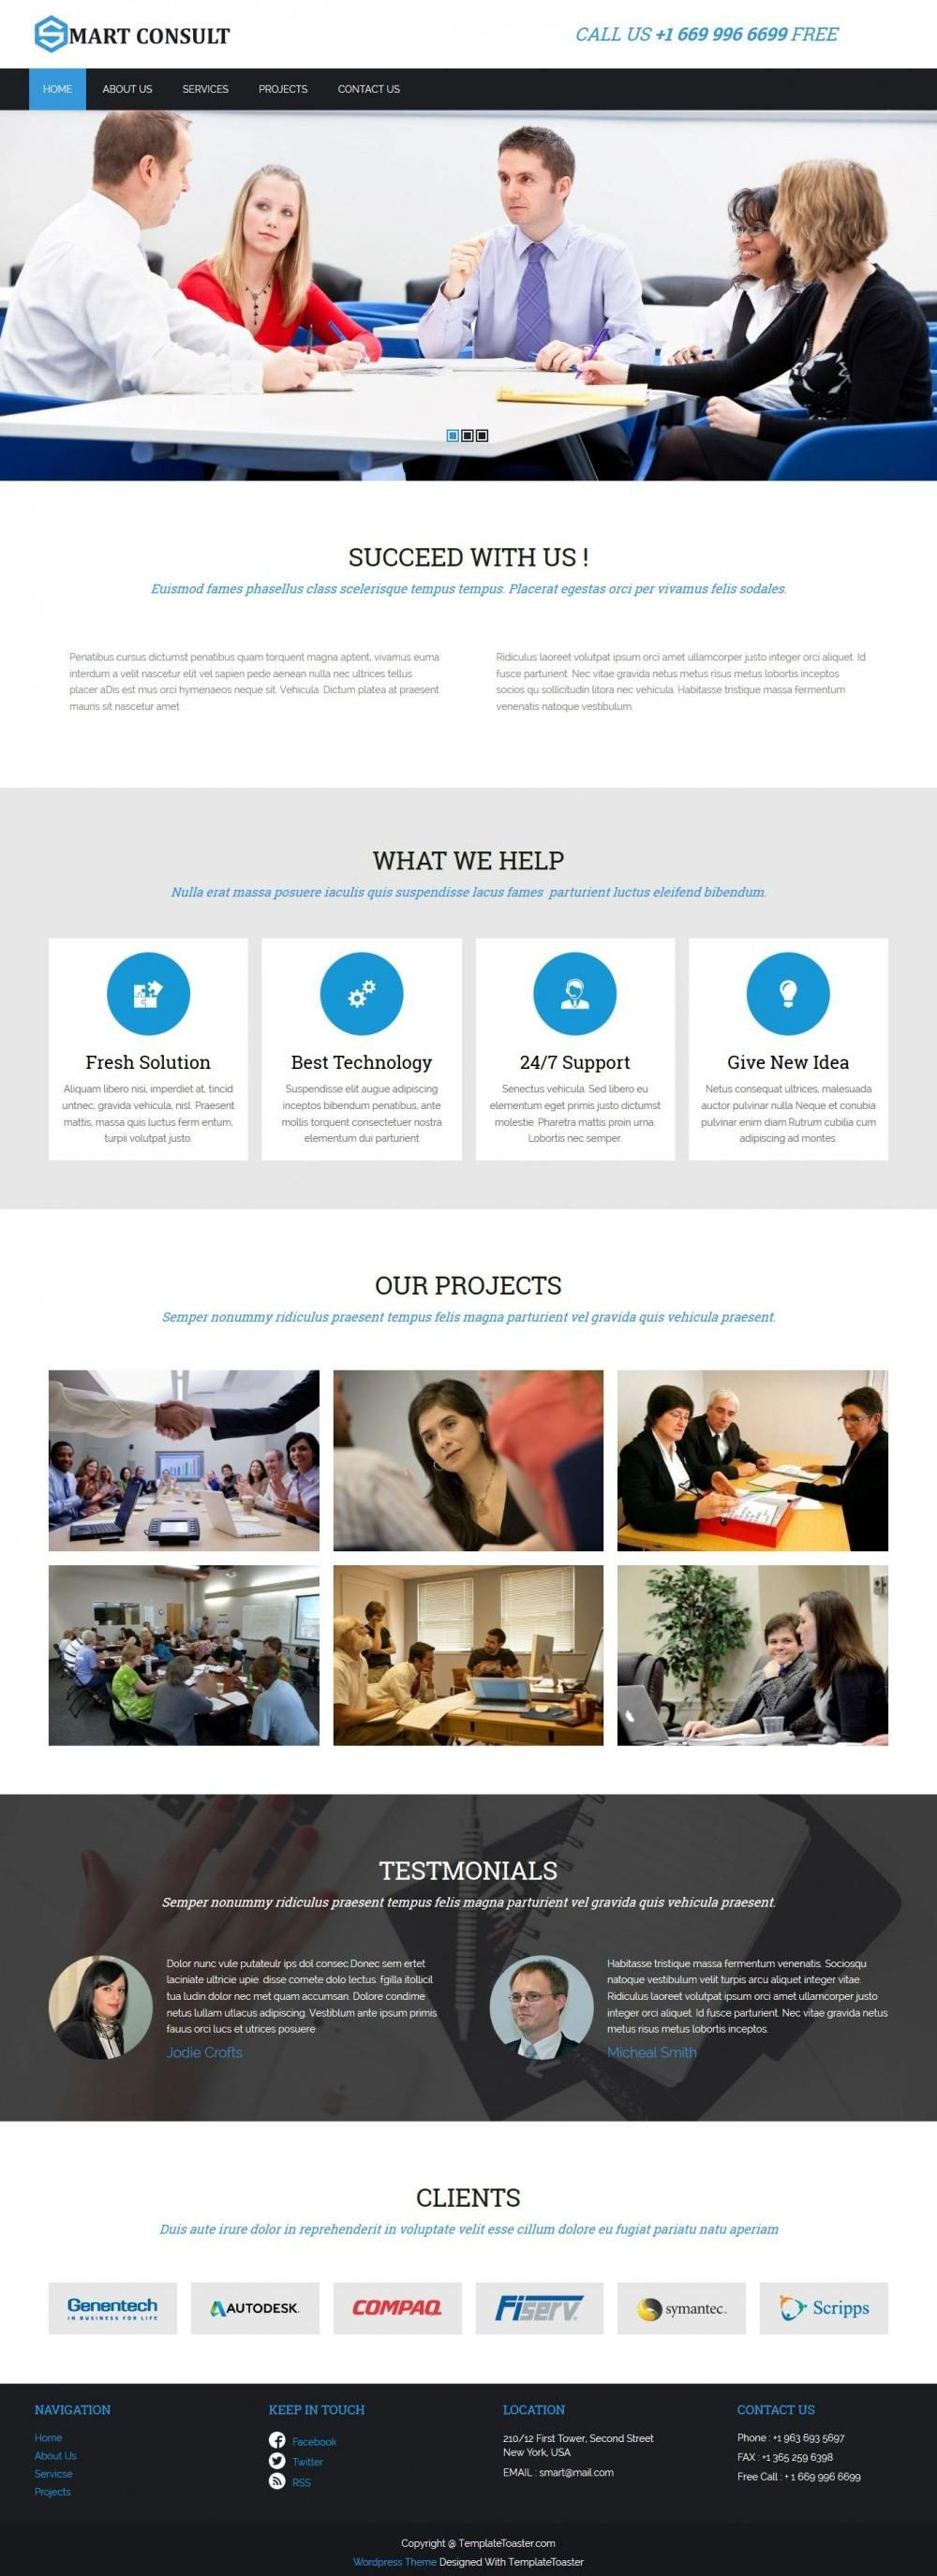 Smart Consultant - Business/Marketing Services Joomla Template